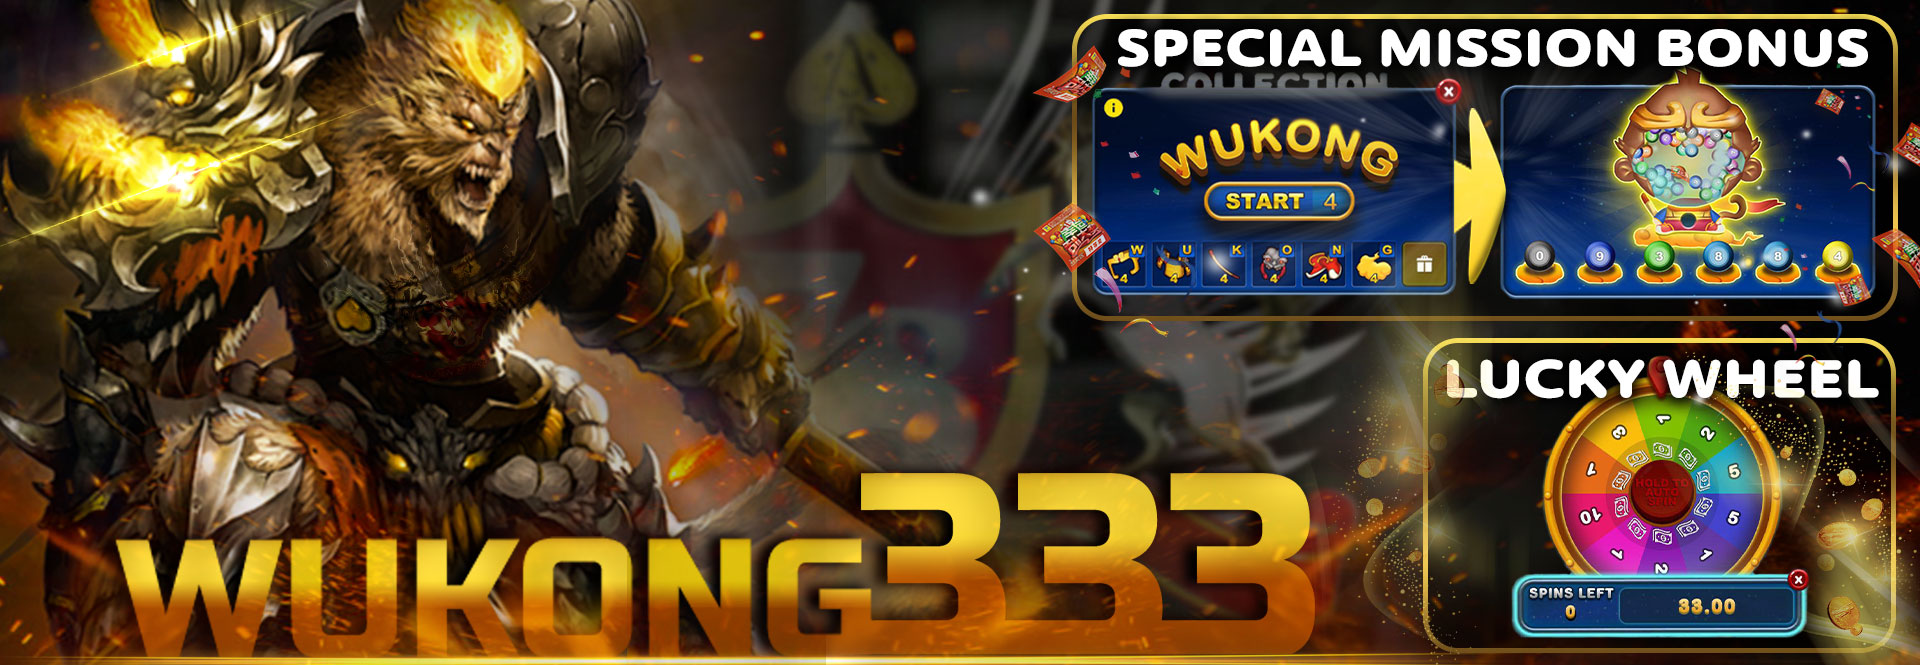 wukong333 New Server Games